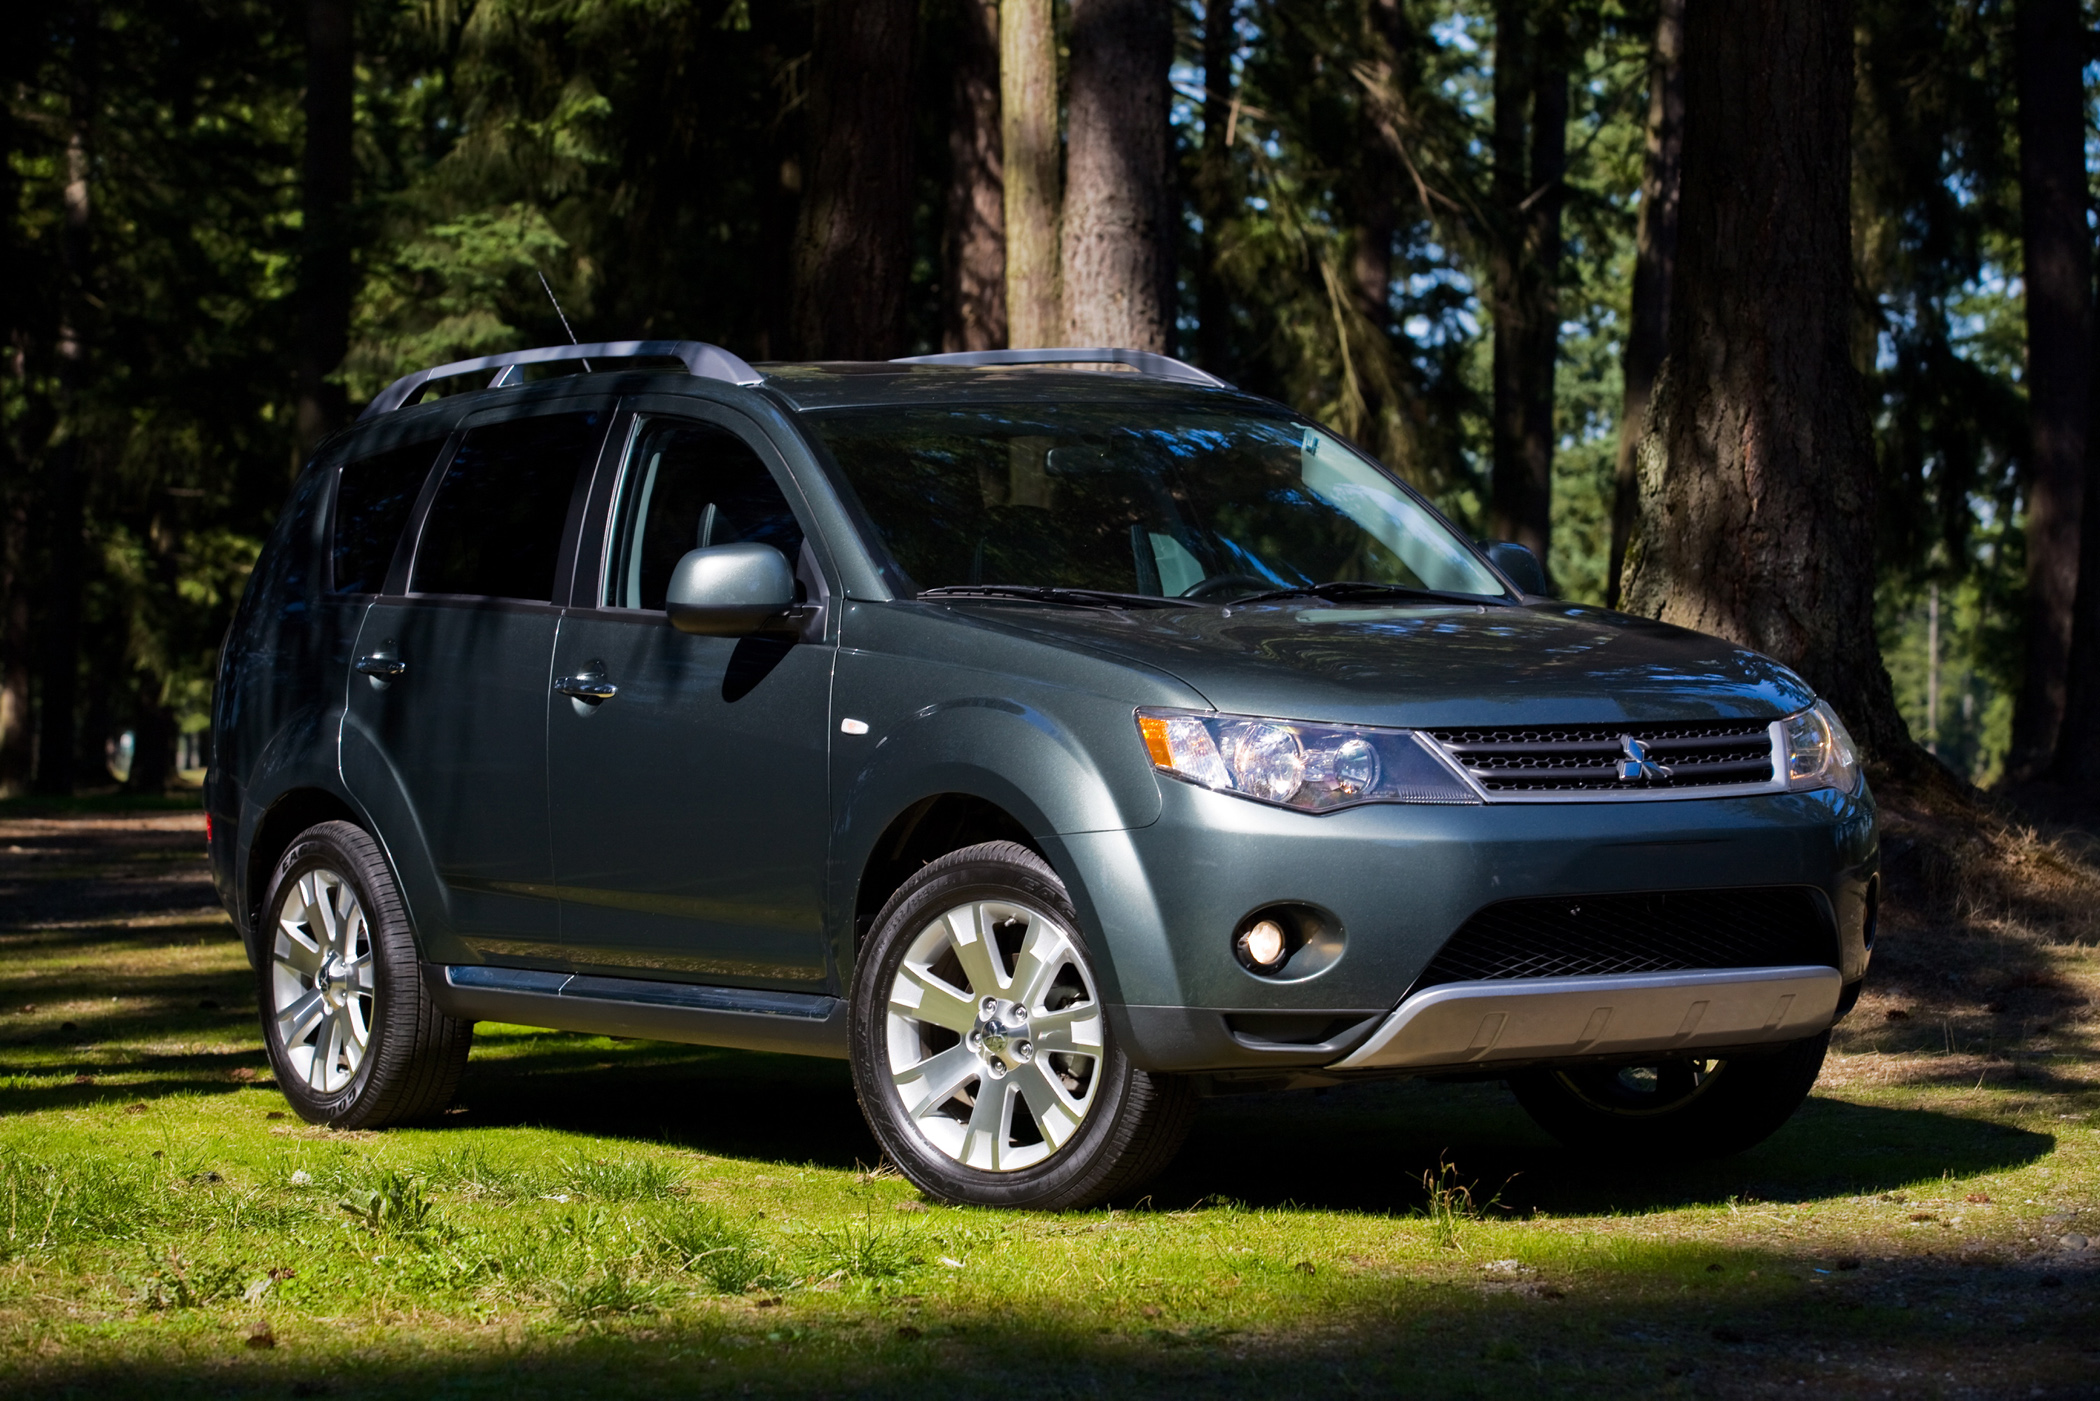 mitsubishi outlander compact crossover with third row new on wheels groovecar. Black Bedroom Furniture Sets. Home Design Ideas